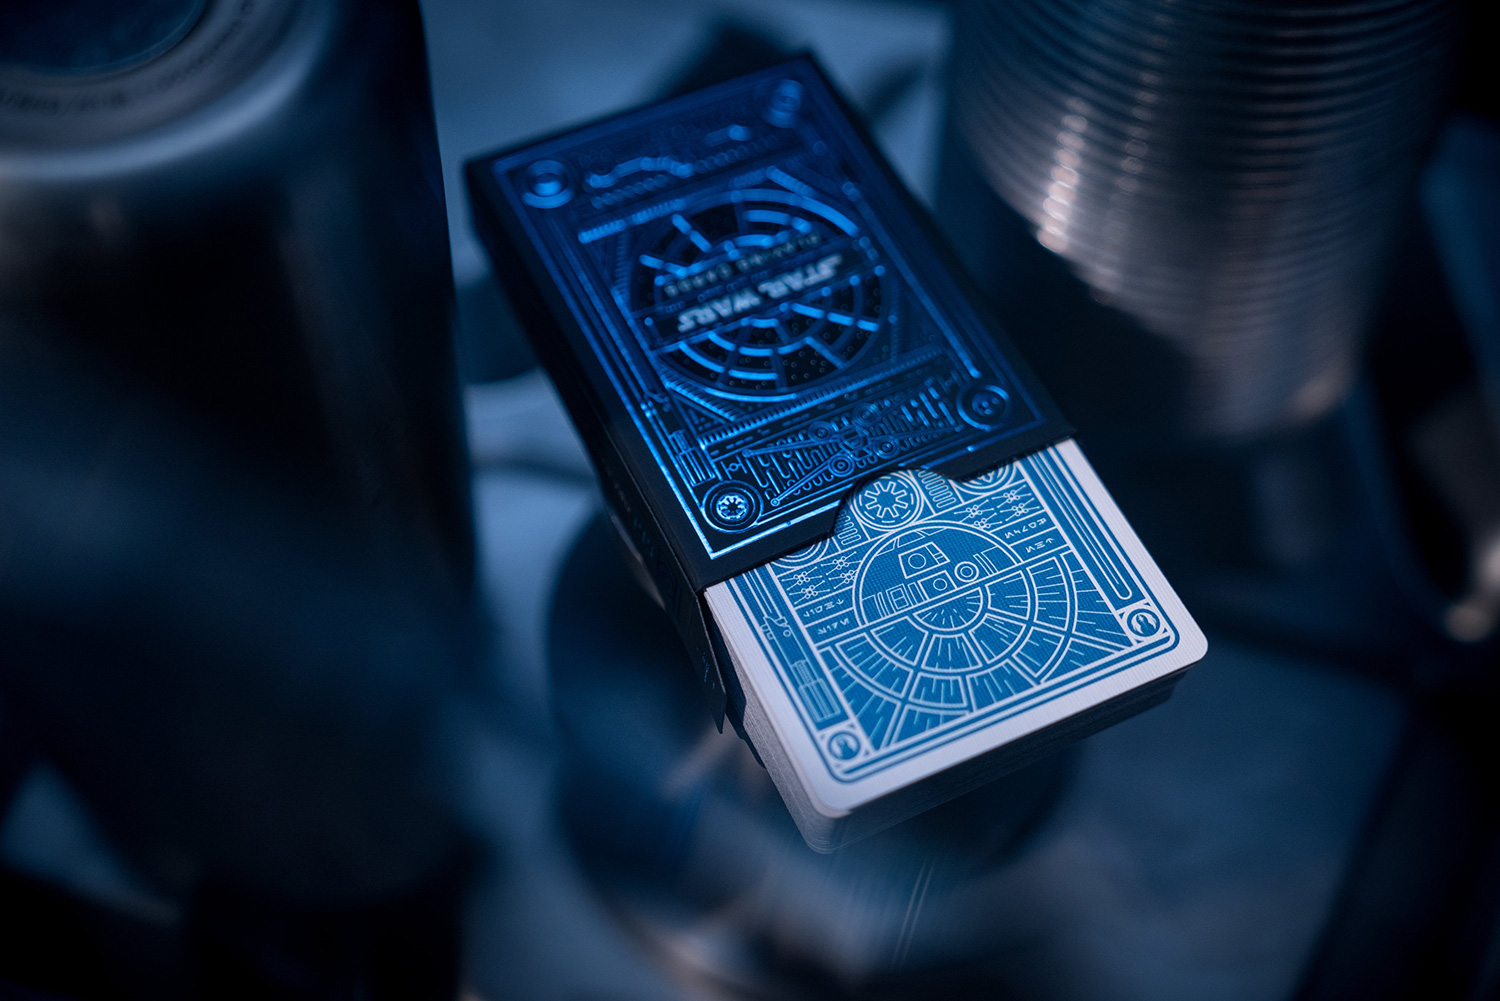 sw playingcards mrcup 10